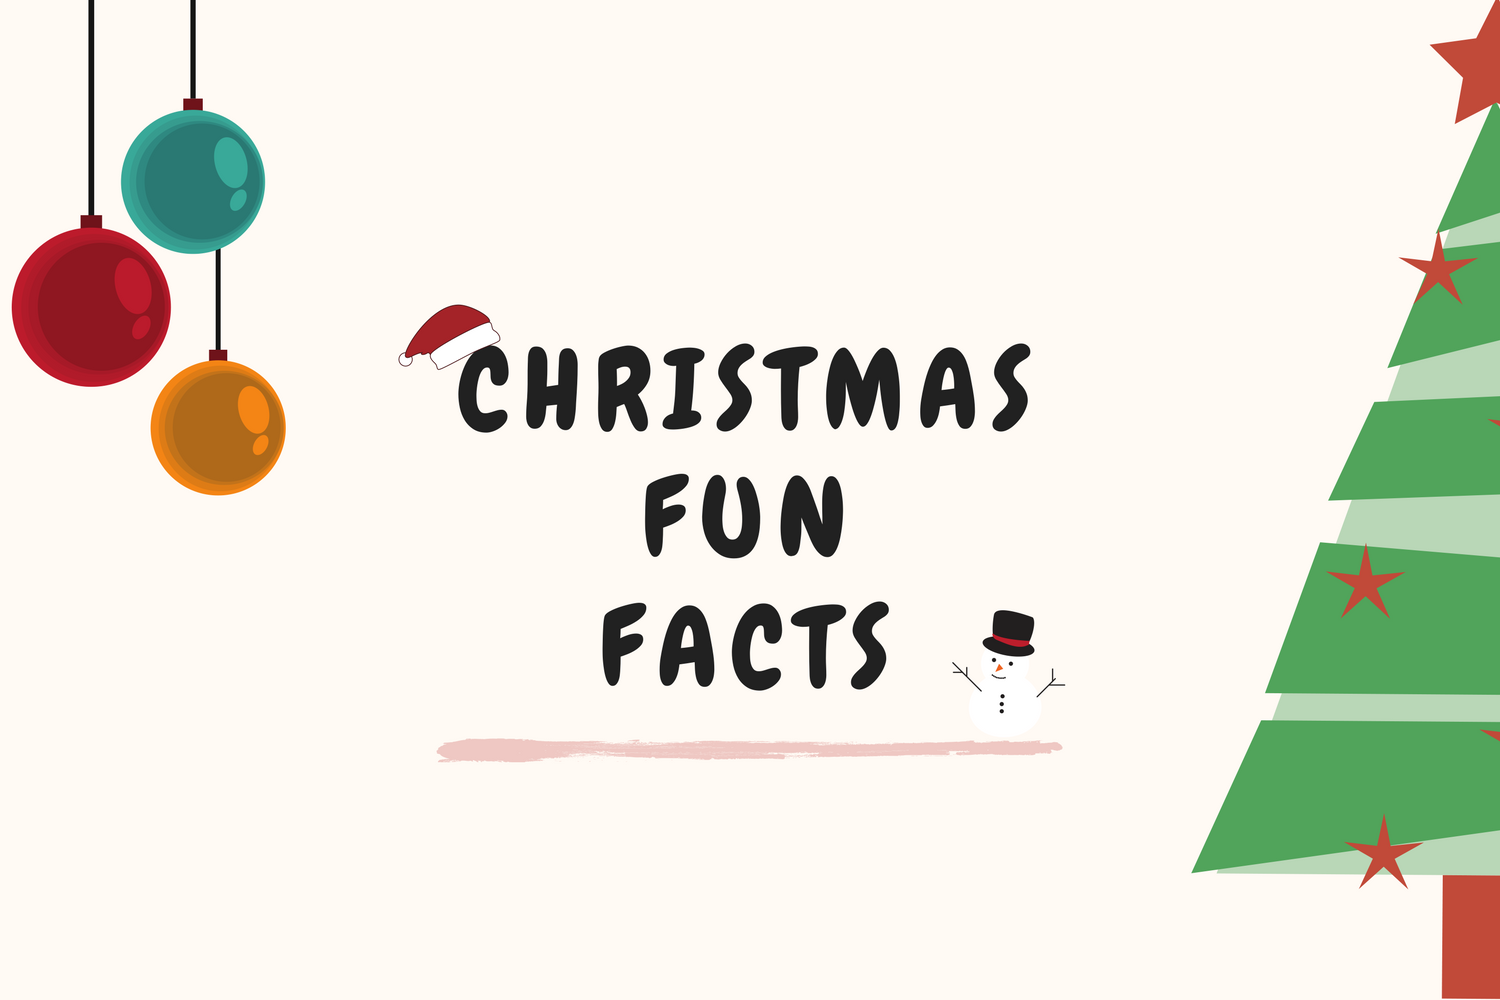 Facts About Christmas.Christmas Fun Facts Infographic Photojaanic Blog